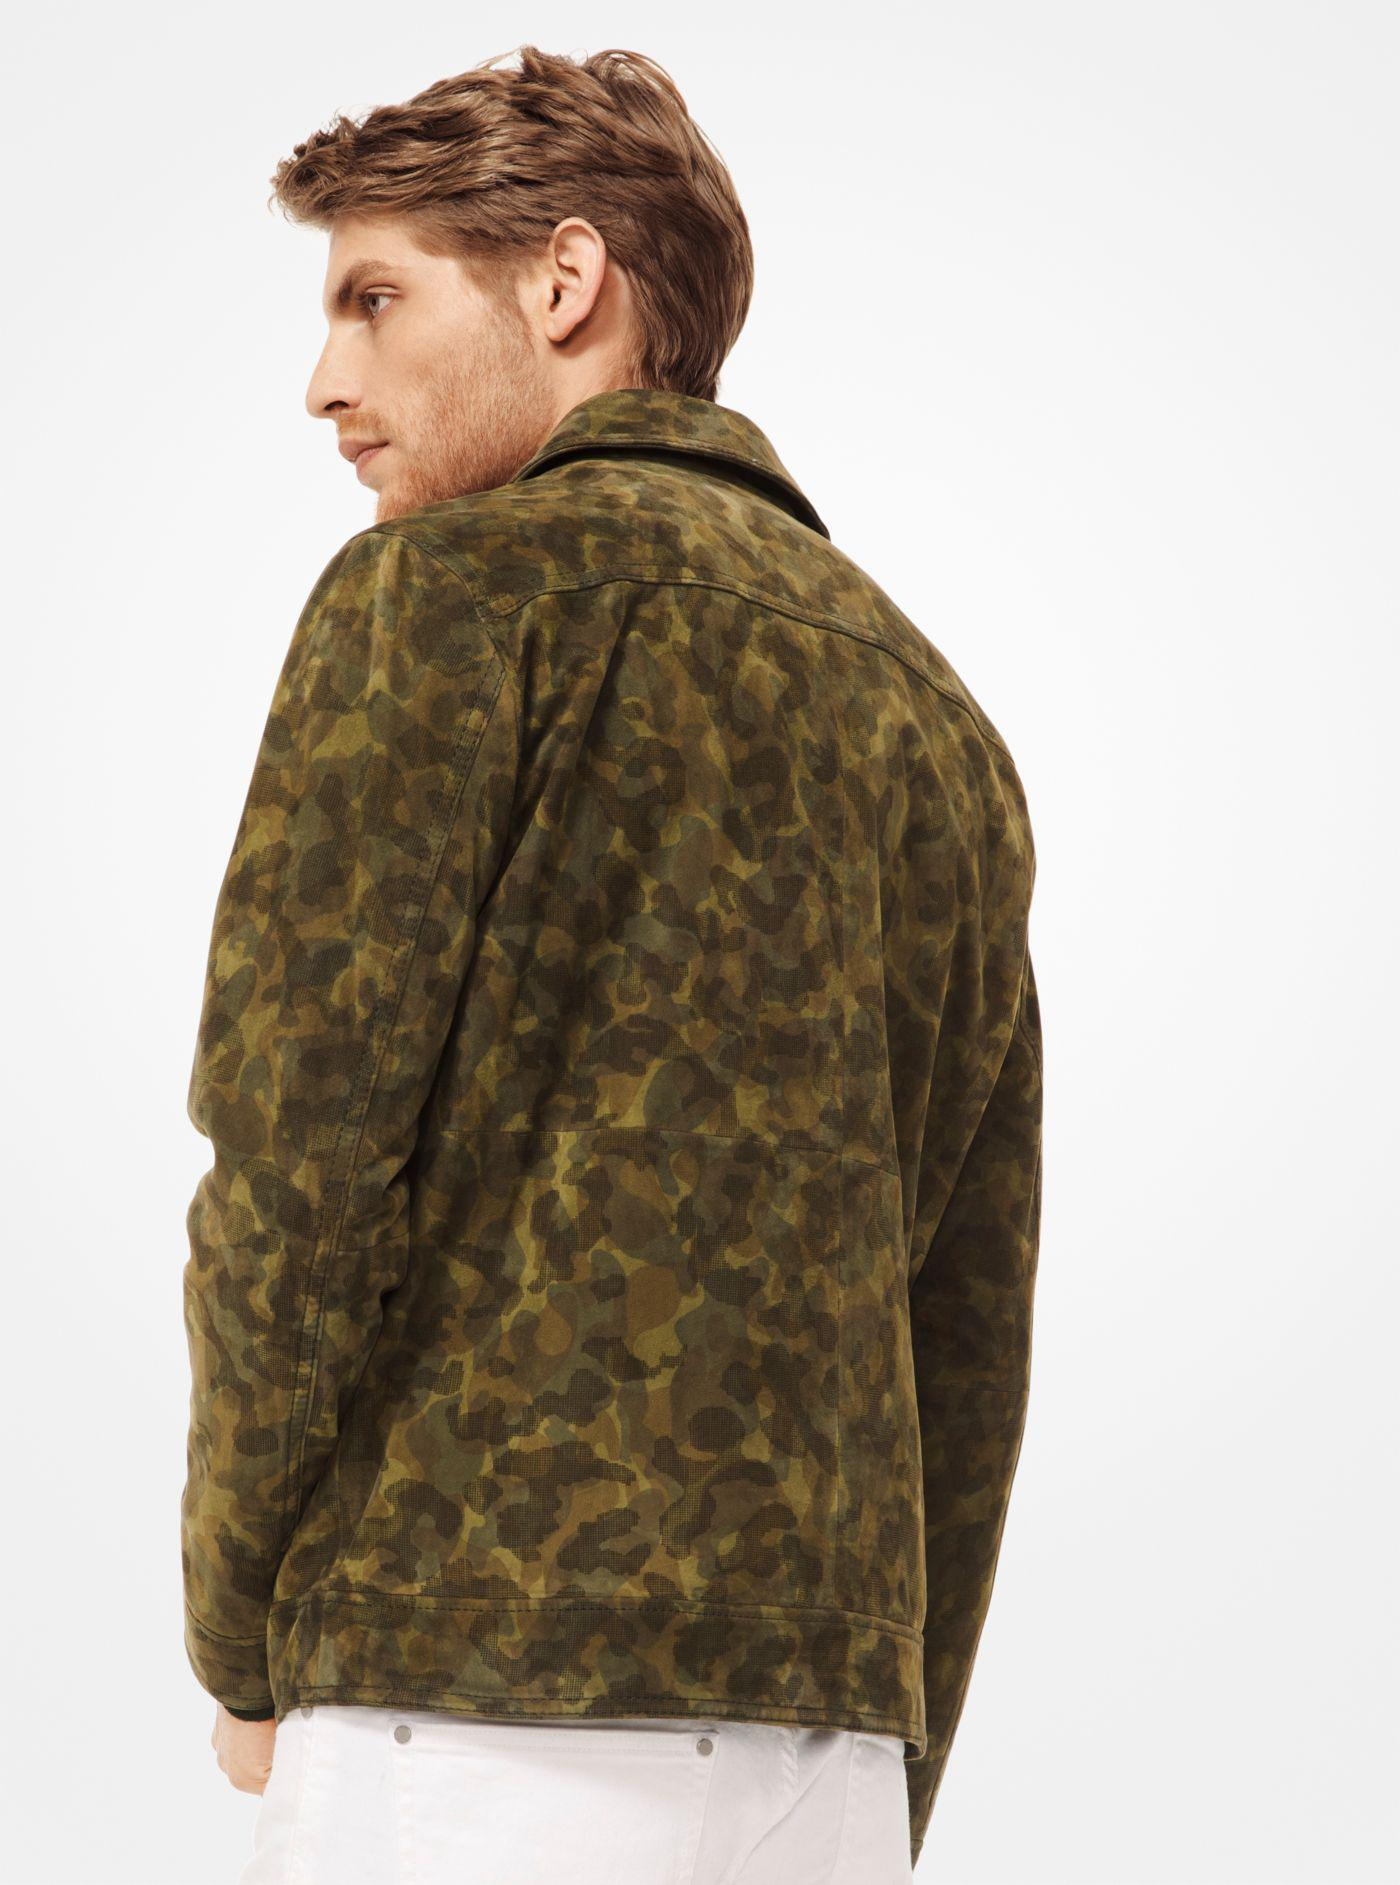 fdc5f87880e8 Michael Kors - Green Camouflage Suede Utility Jacket for Men - Lyst. View  fullscreen